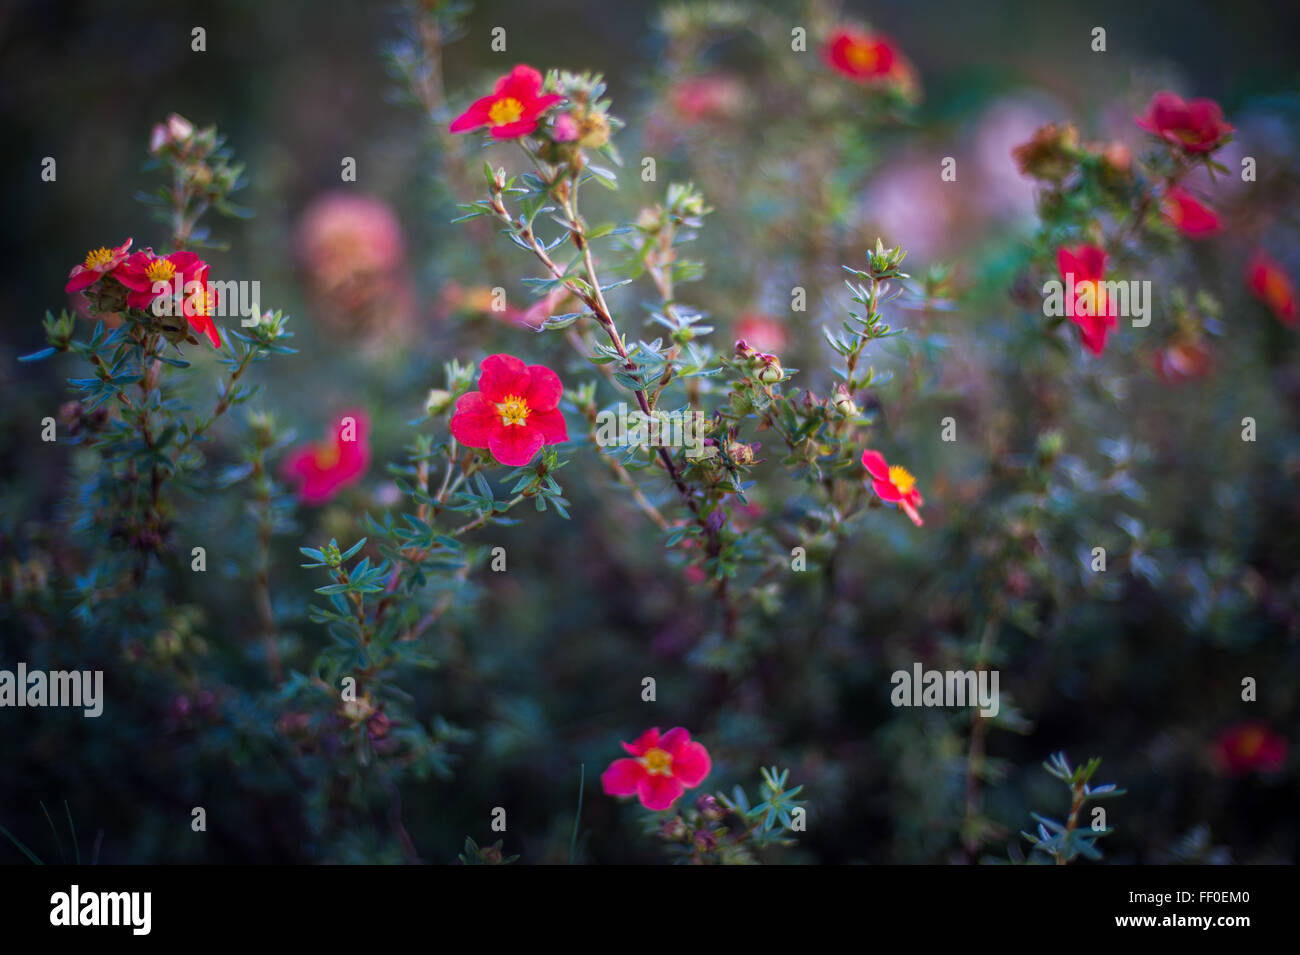 Dainty pink flowers in a London park, England - Stock Image